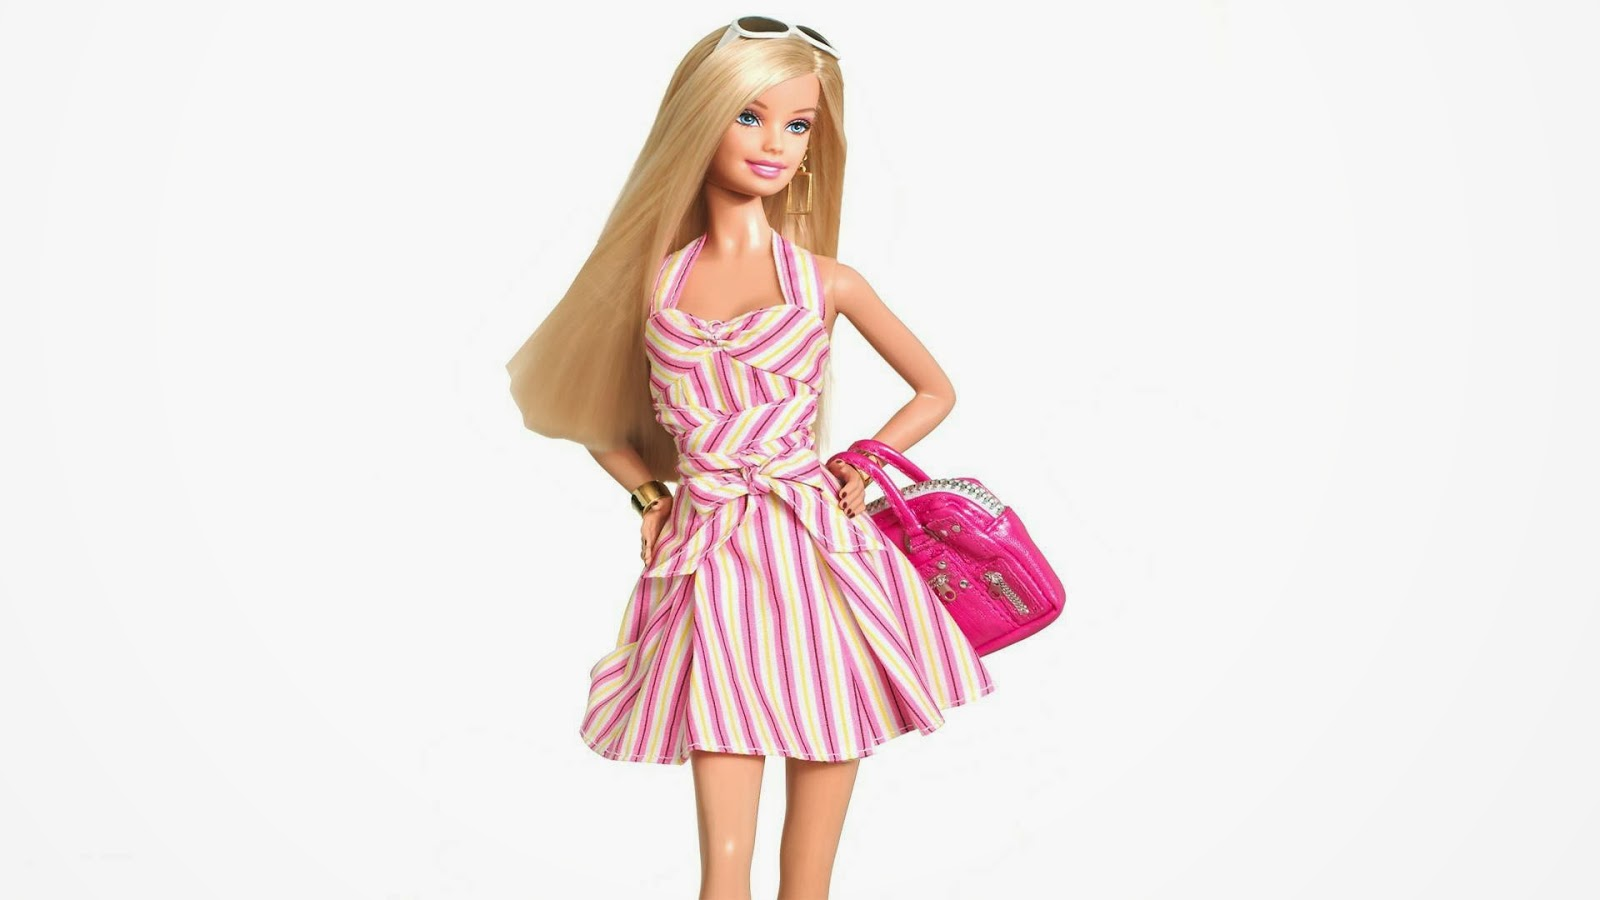 barbie doll collection of different barbie dolls cute and beautiful 1600x900